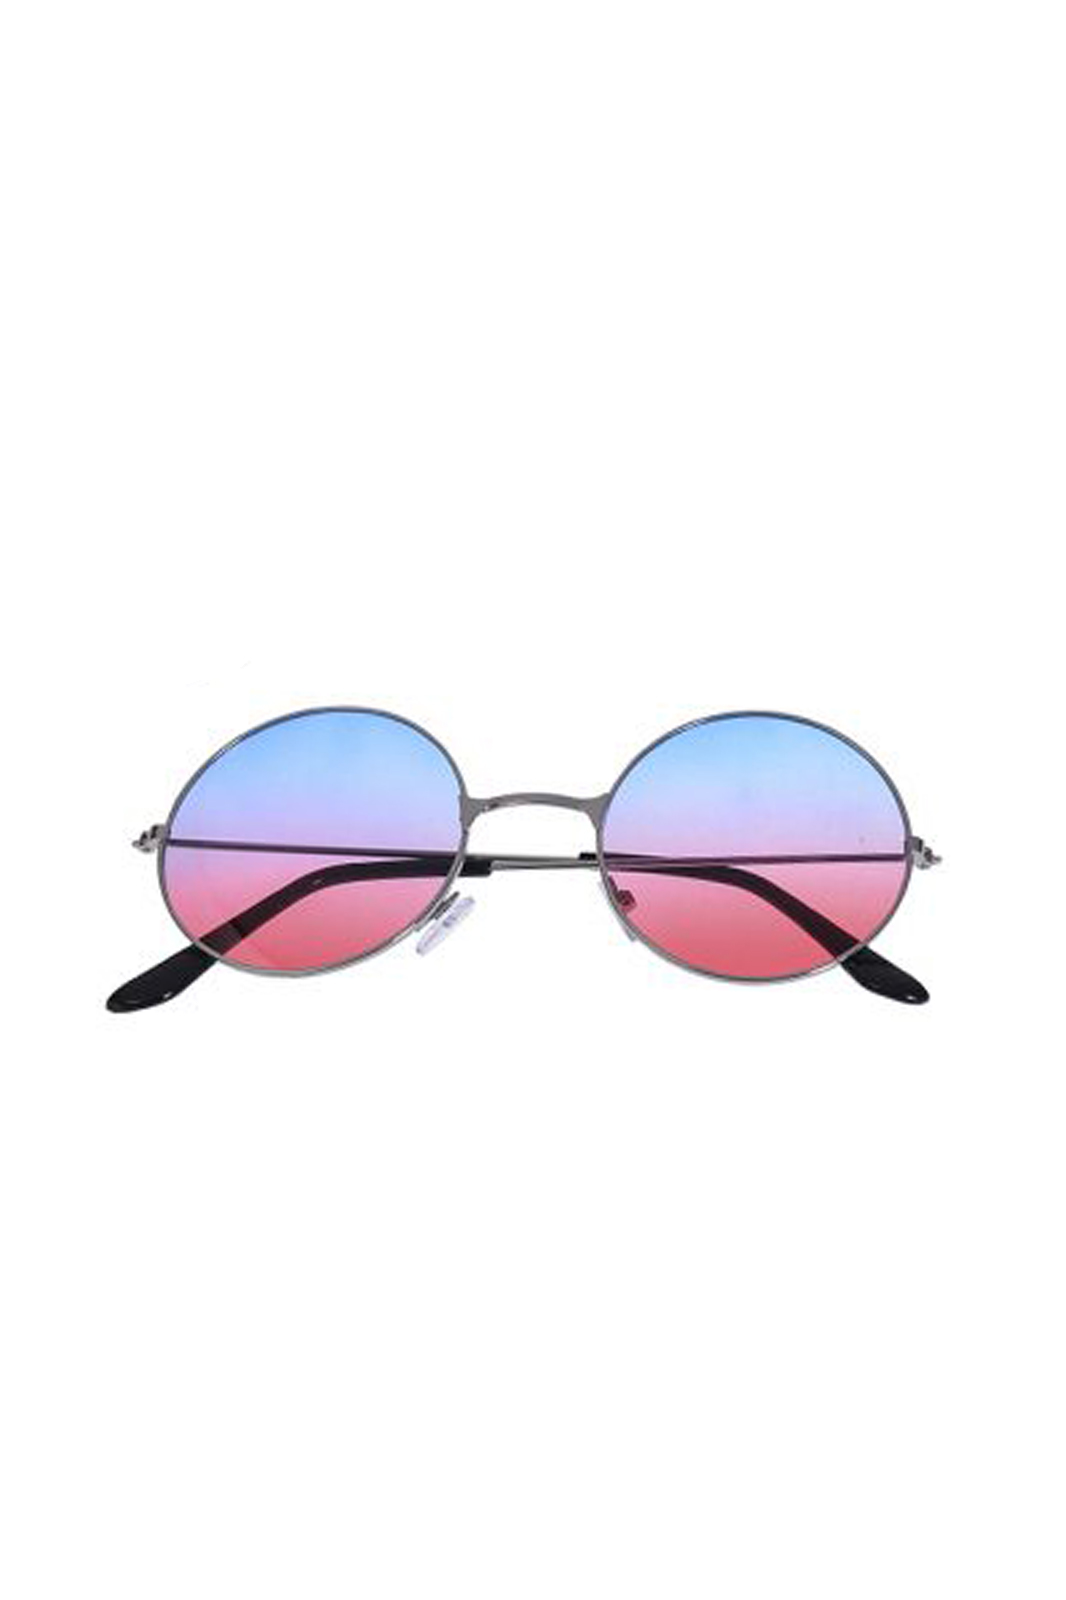 Sunglasses Lennon Two Tone Pink Blue